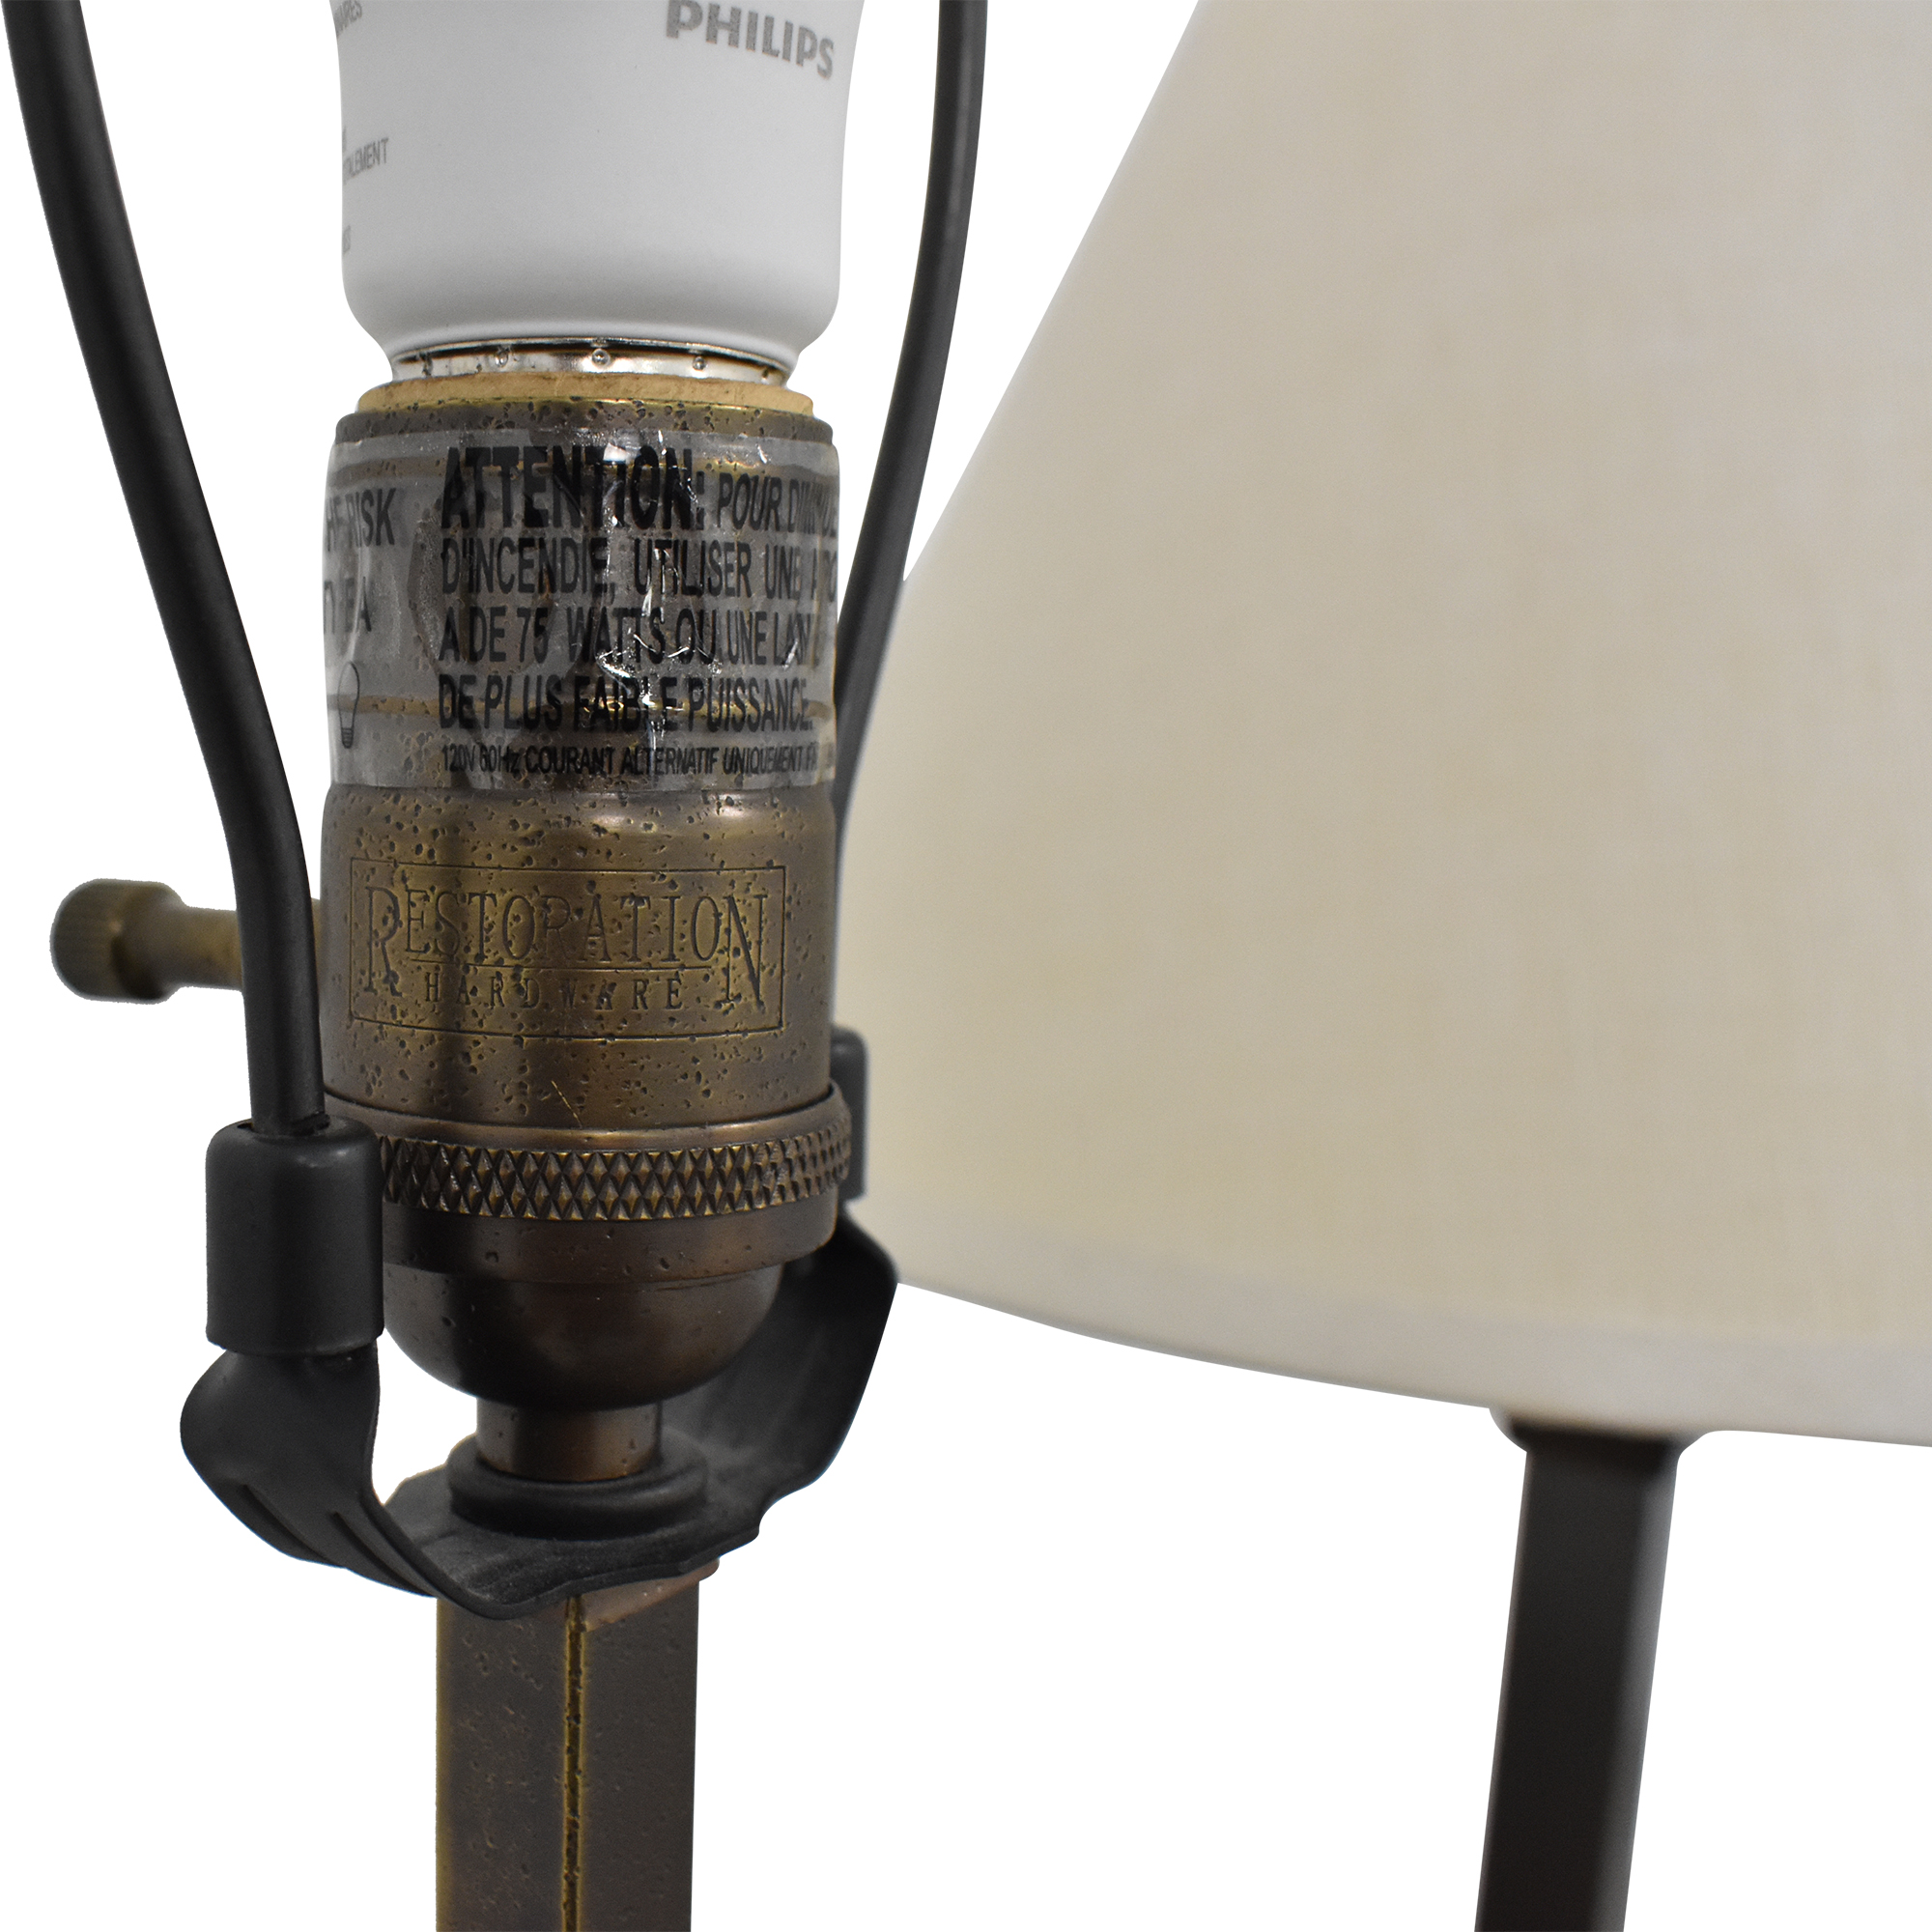 Restoration Hardware Restoration Hardware Small Table Lamps for sale